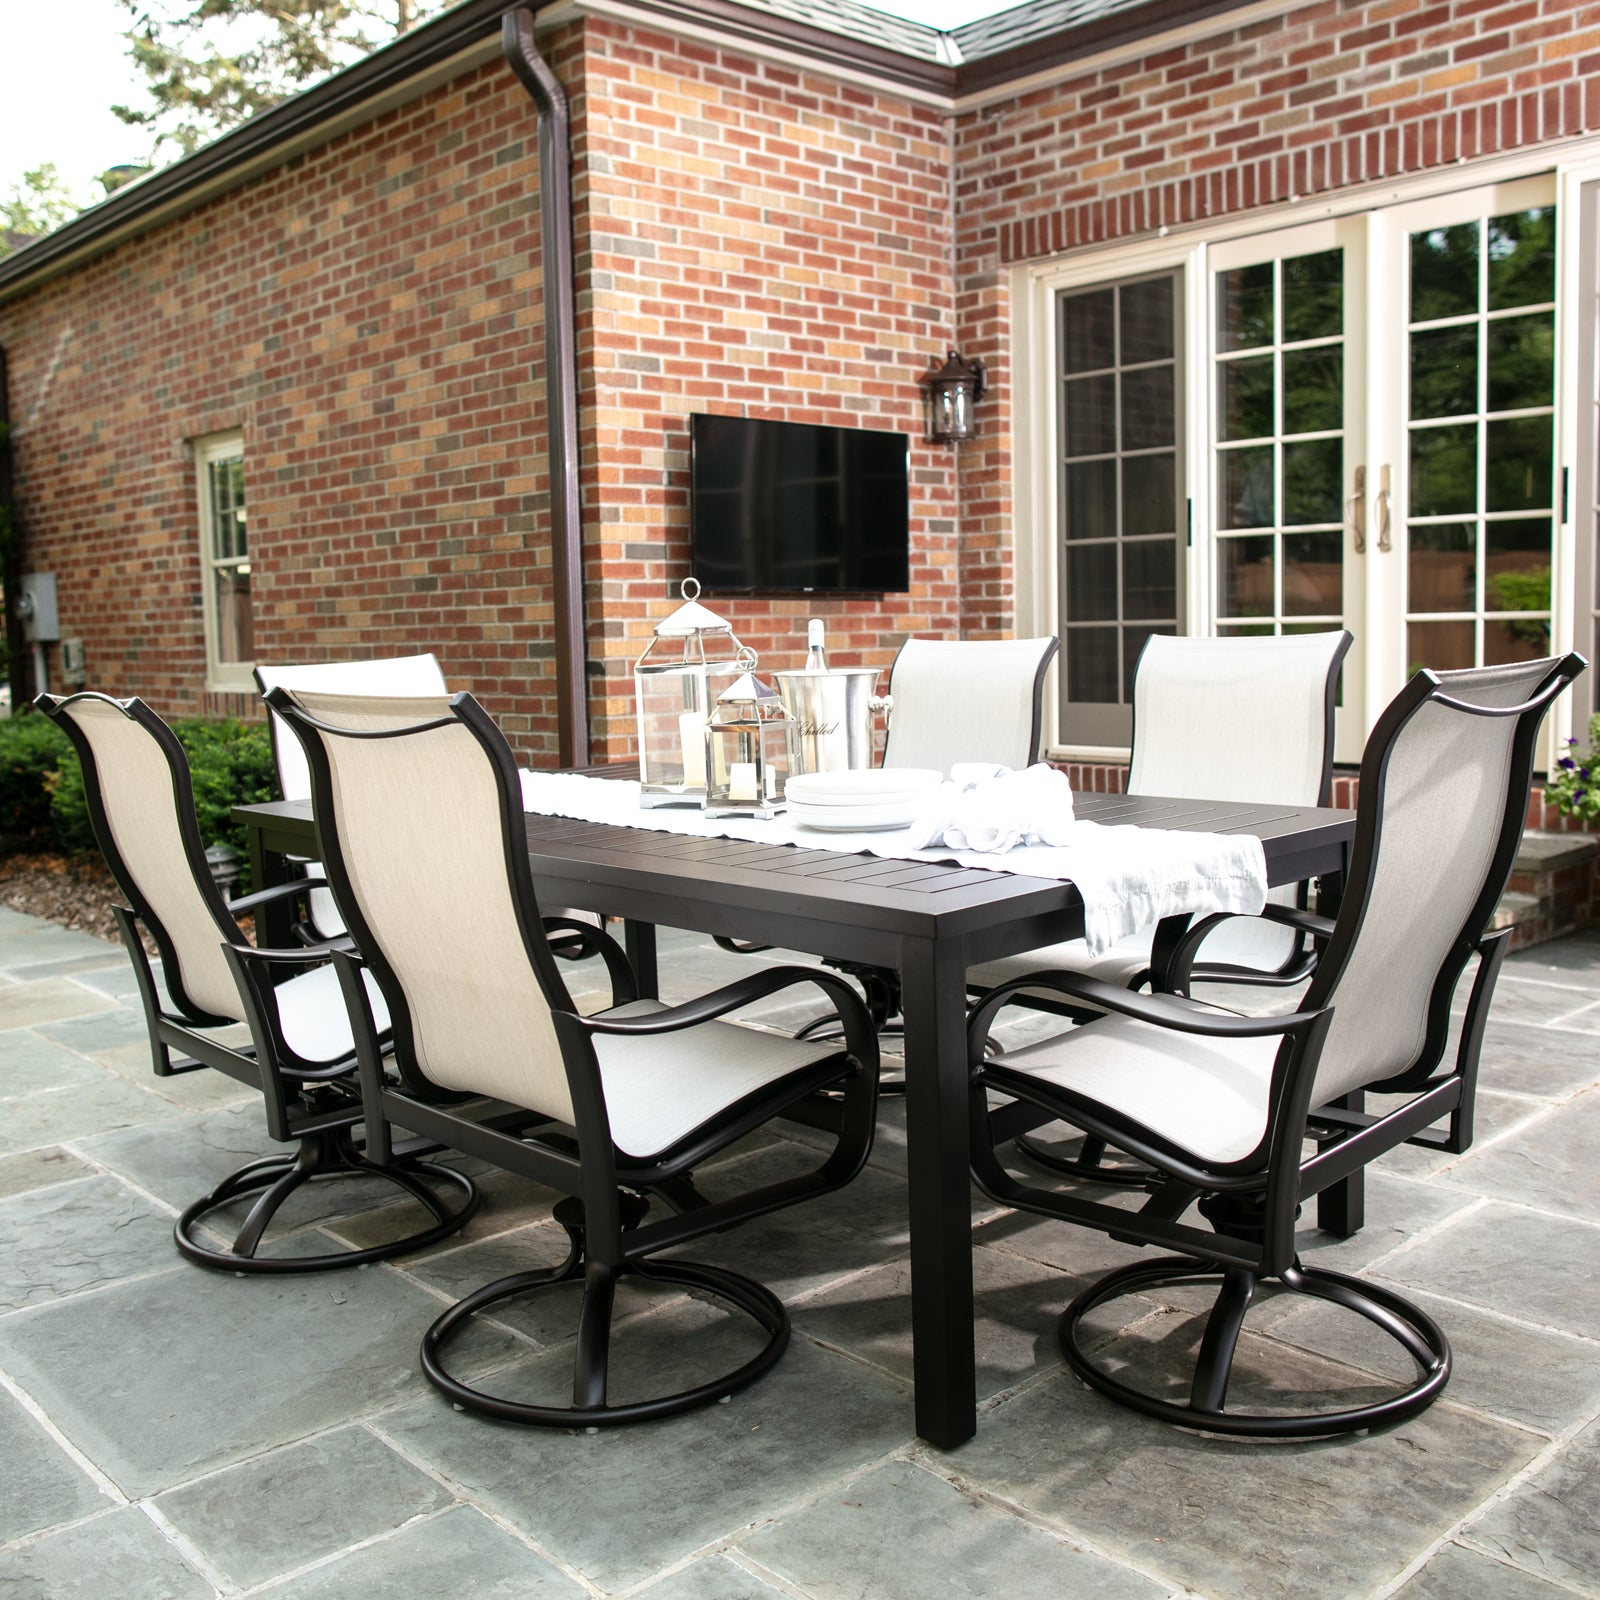 7 Piece Rectangular Outdoor Dining Set With Sling Chairs Yardbird